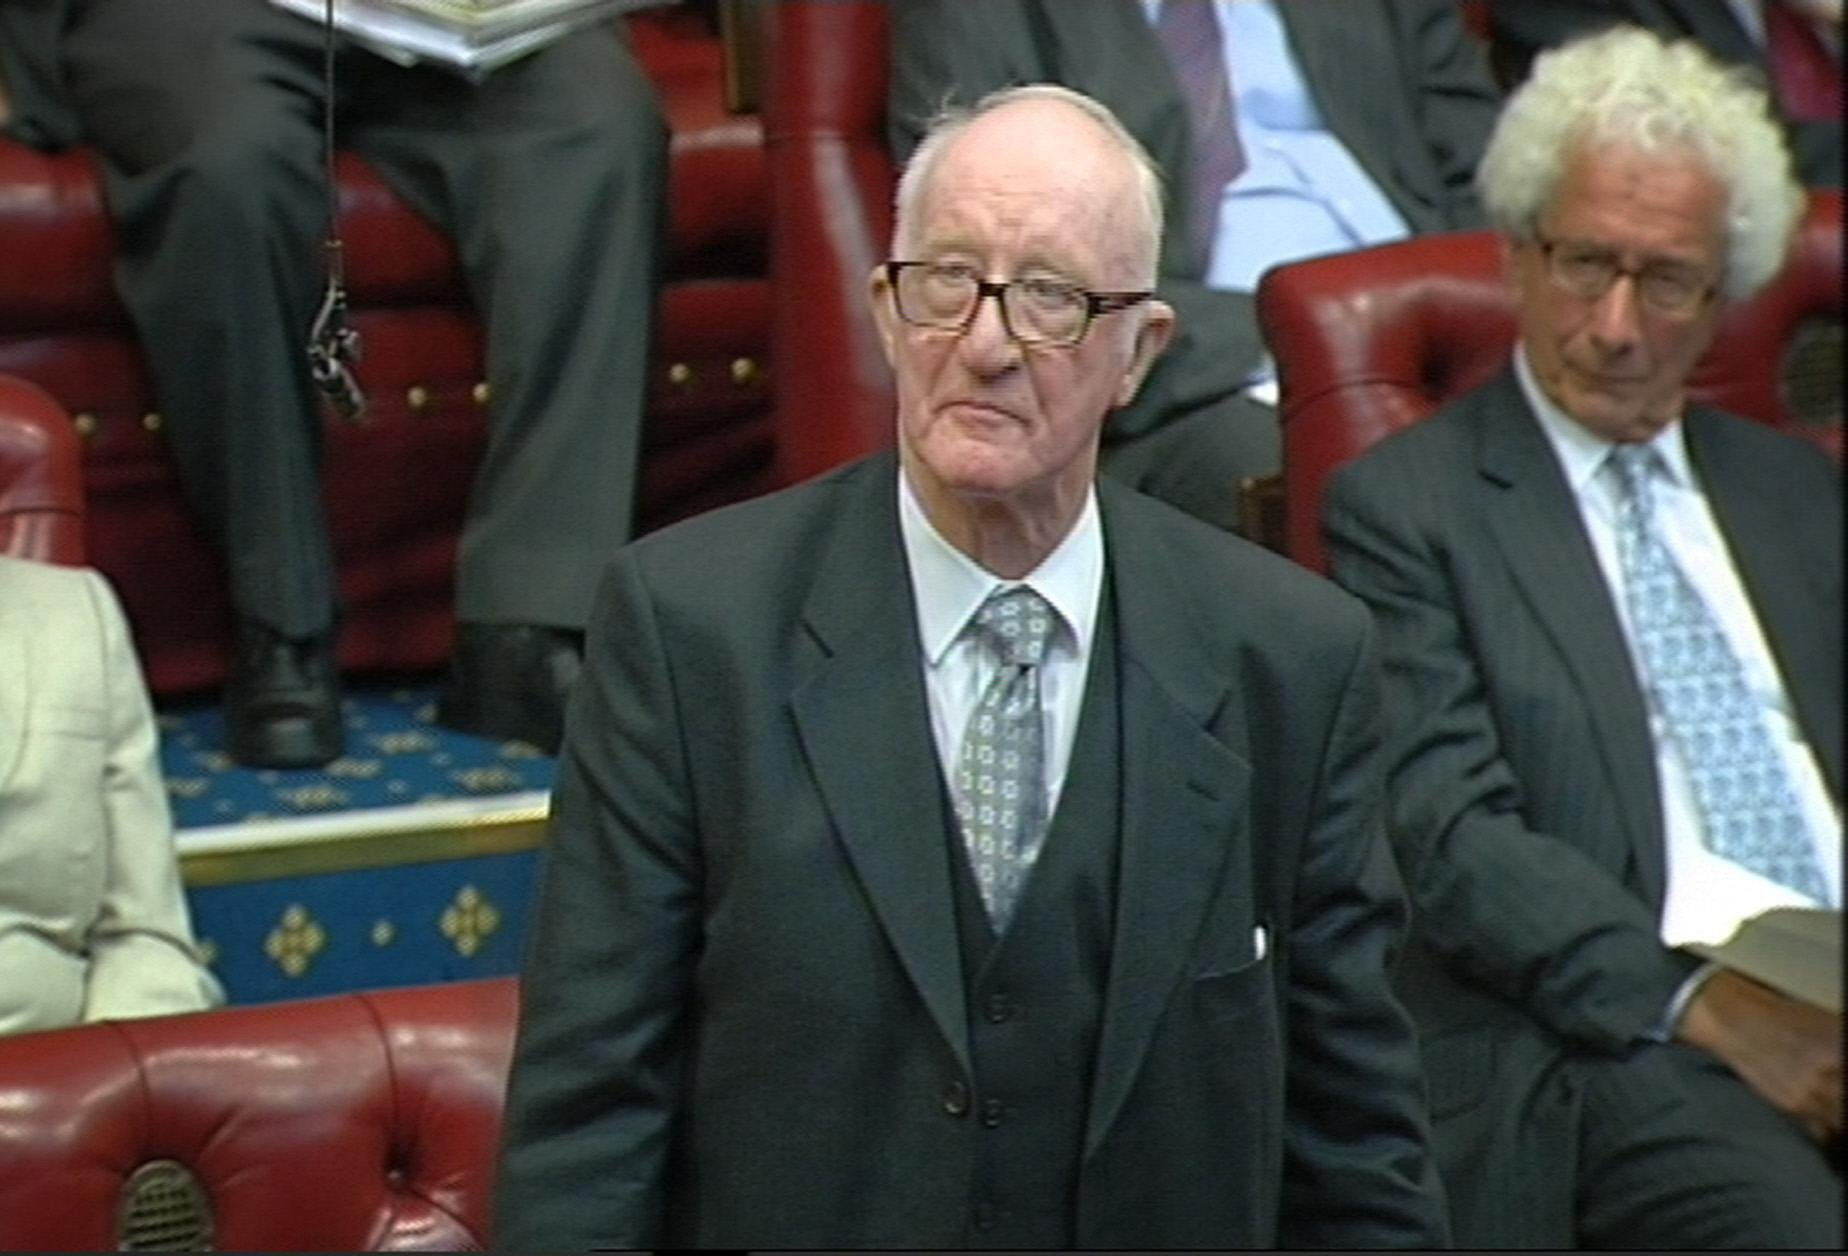 Labour peer dies after mobility scooter crash outside Parliament